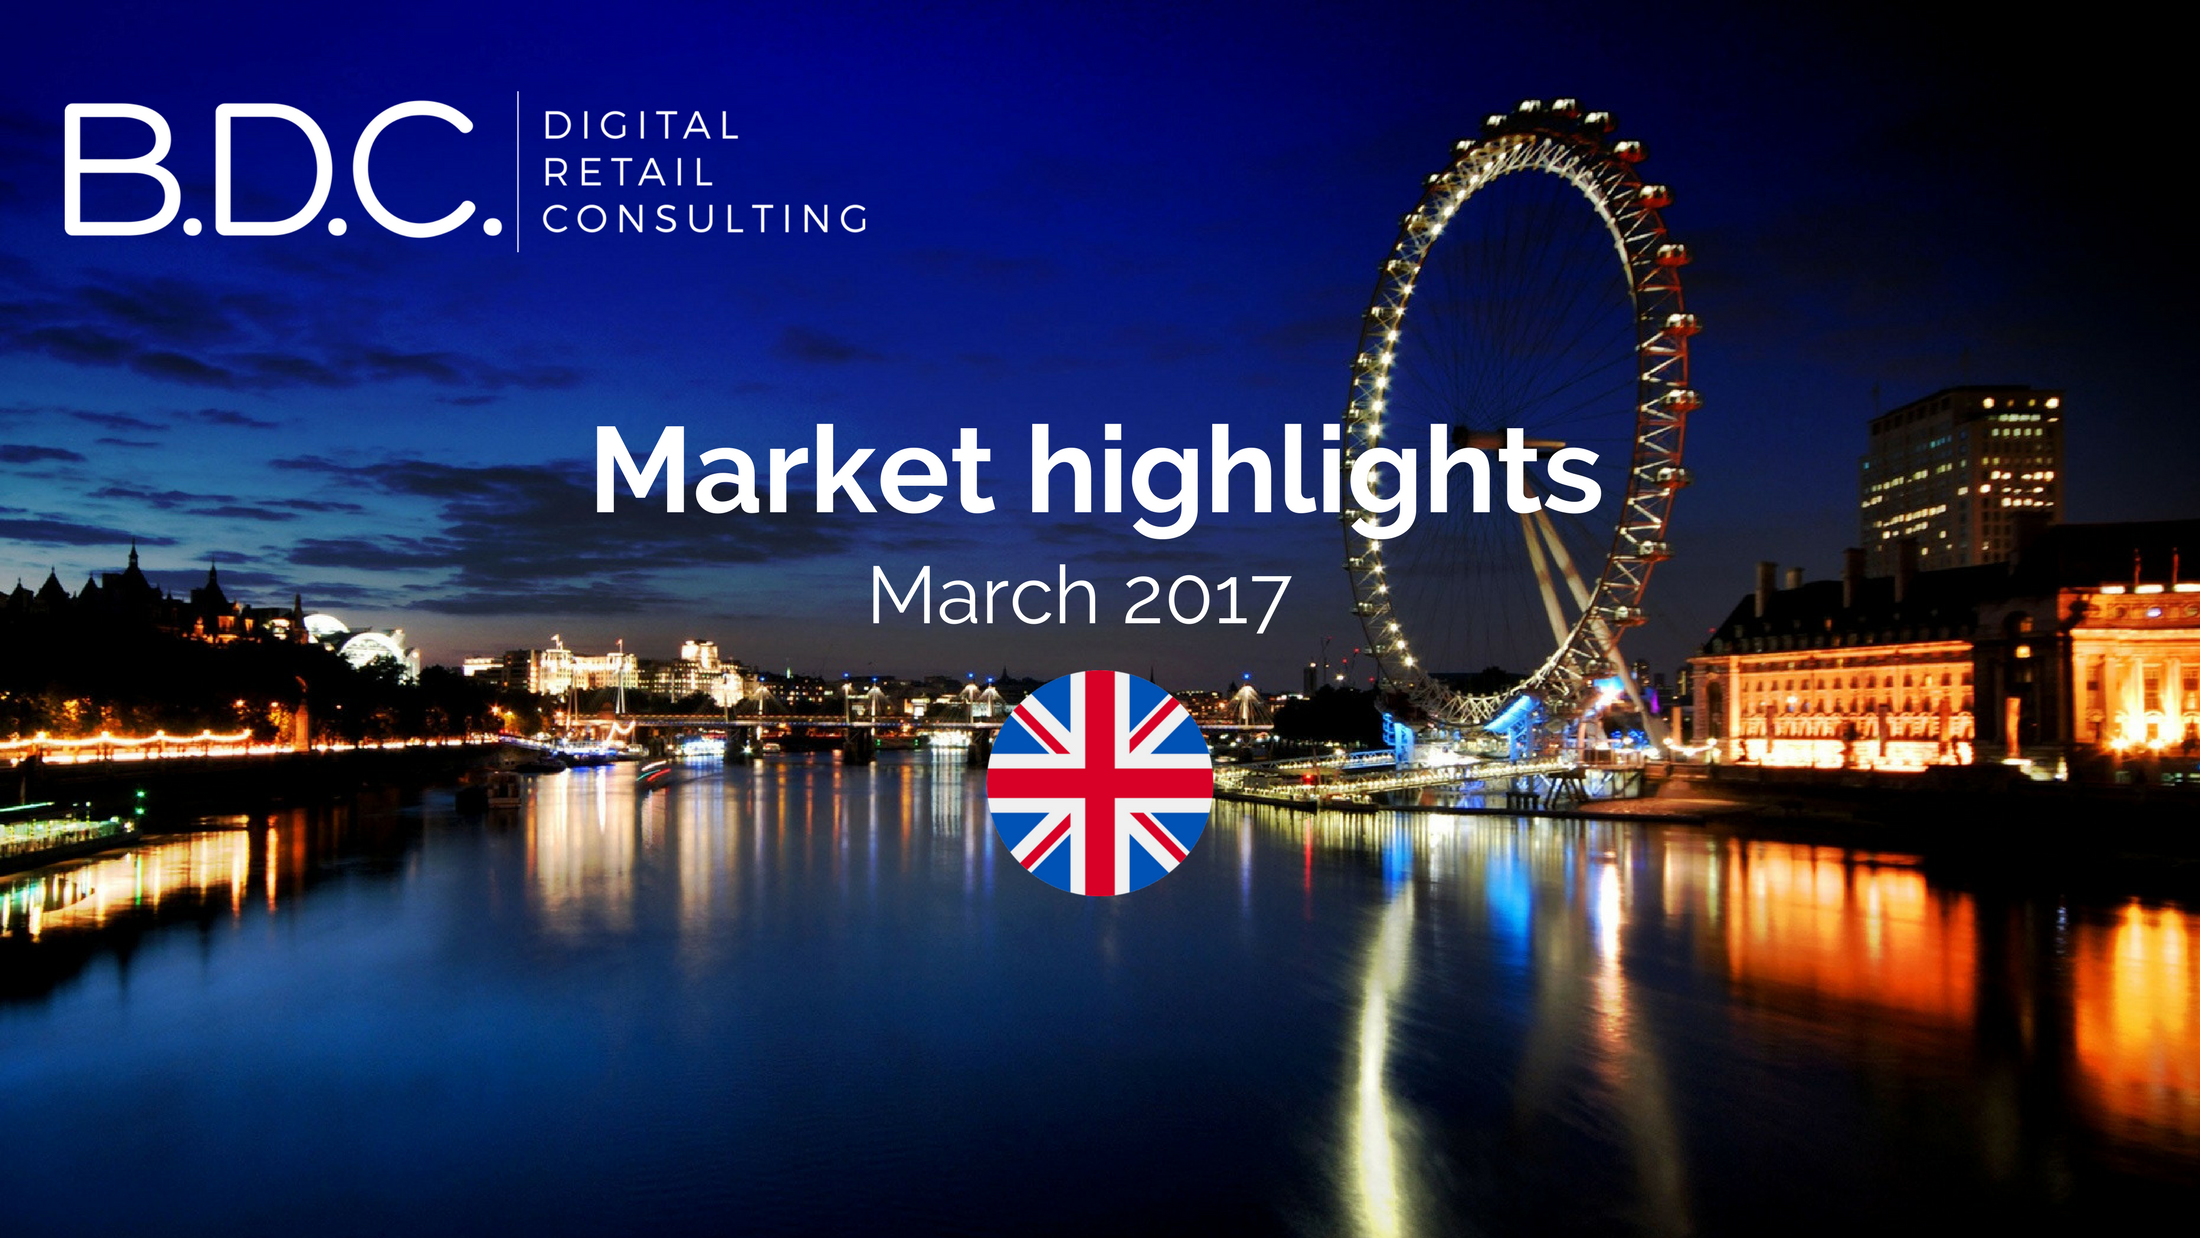 Trends News 6 - Market highlights - March 2017